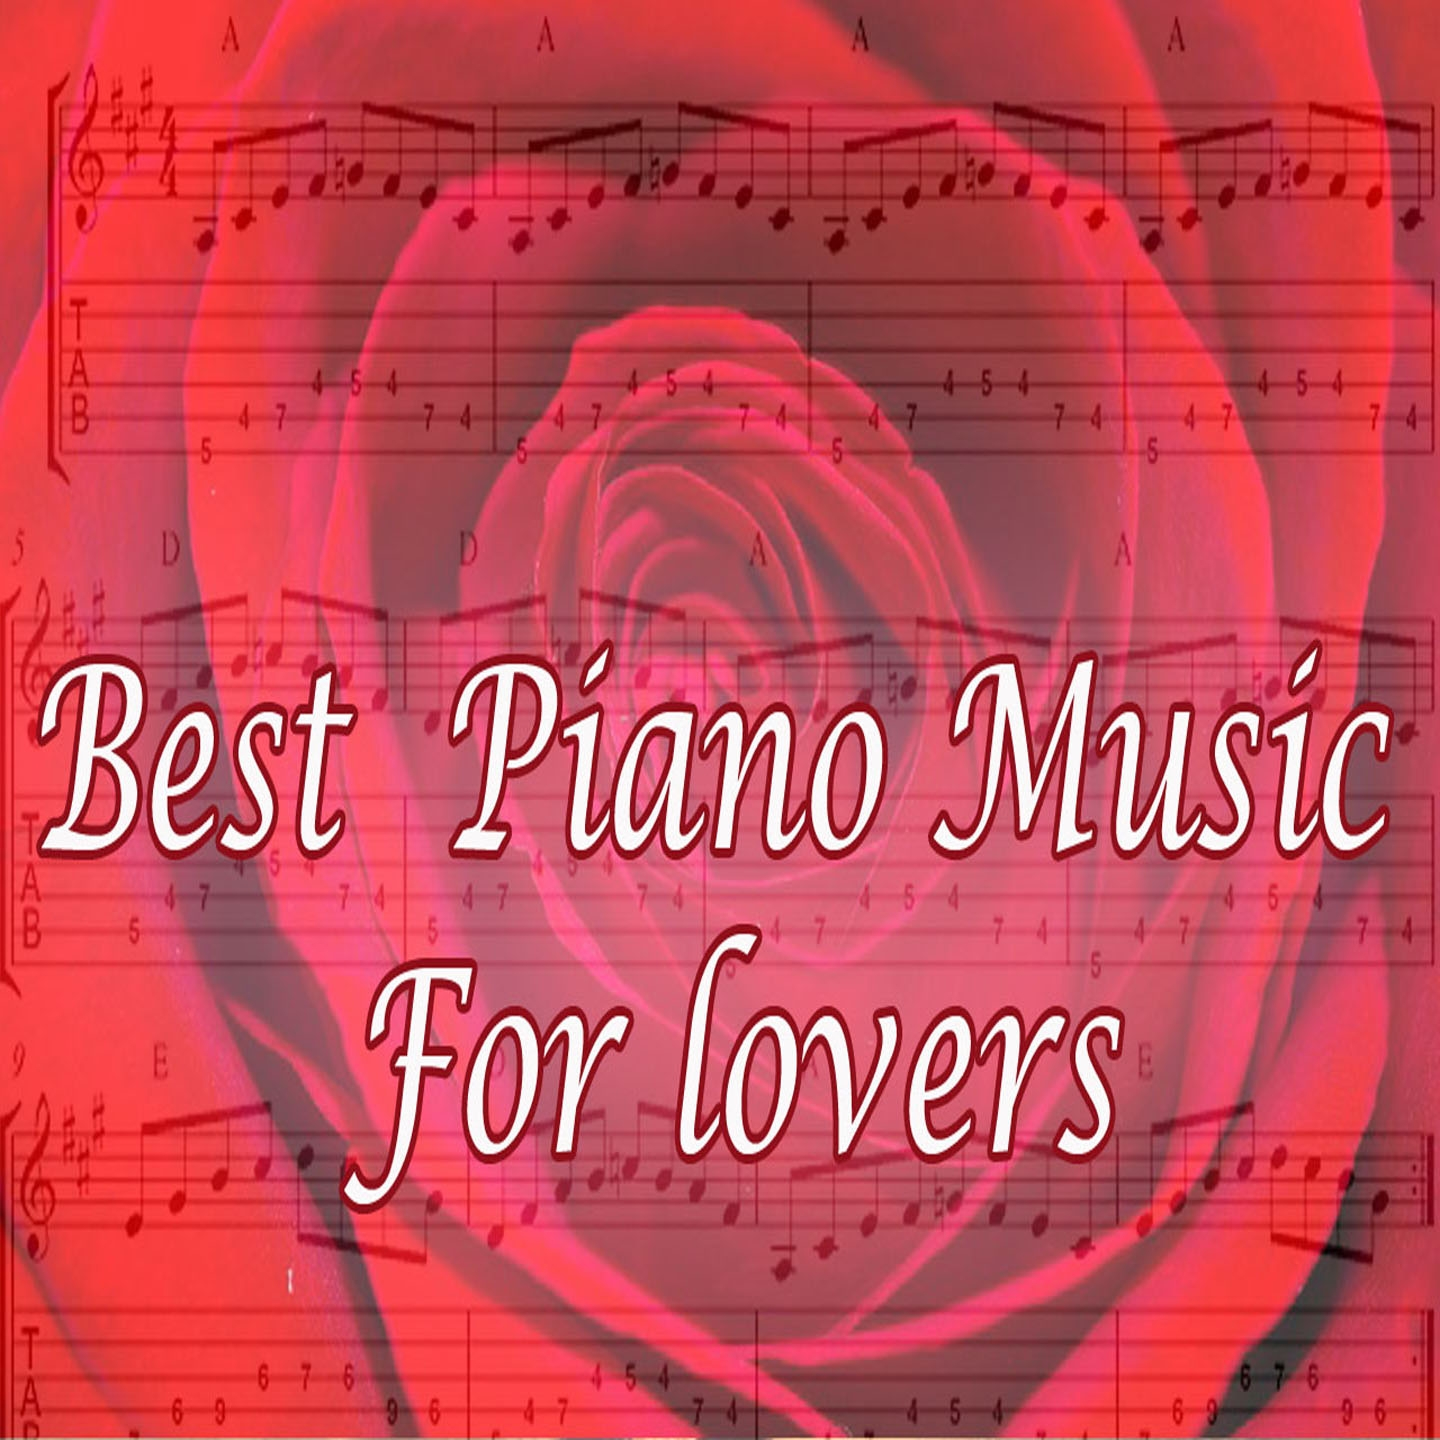 Best Piano Music for Lovers